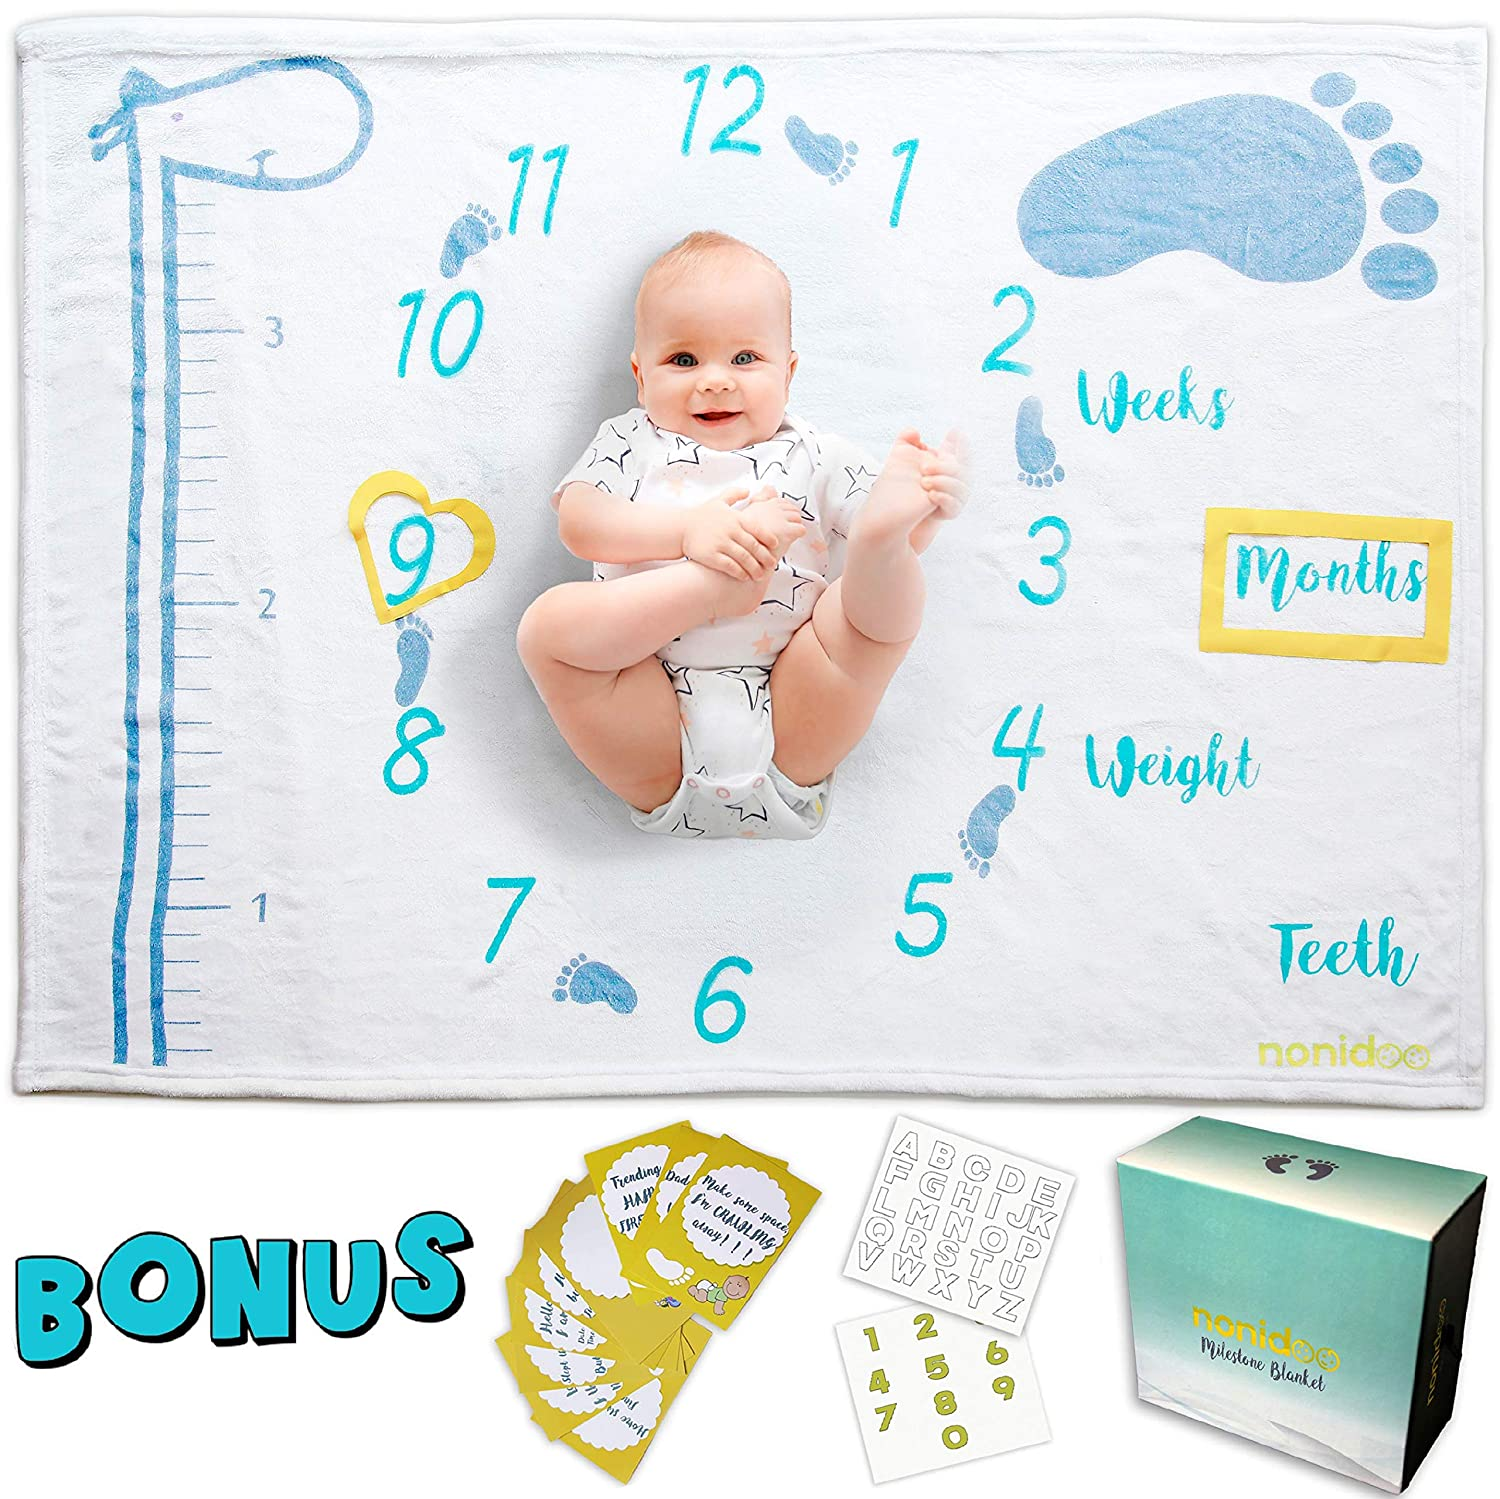 Nonidoo Baby Milestone Blanket Complete Package | Beautiful memories of your boy or girl | Super soft Unisex Photo Backdrop |16 Free Bonus Accessories| Unique Box for Baby Shower Gifts | Fleece Growth Blanket